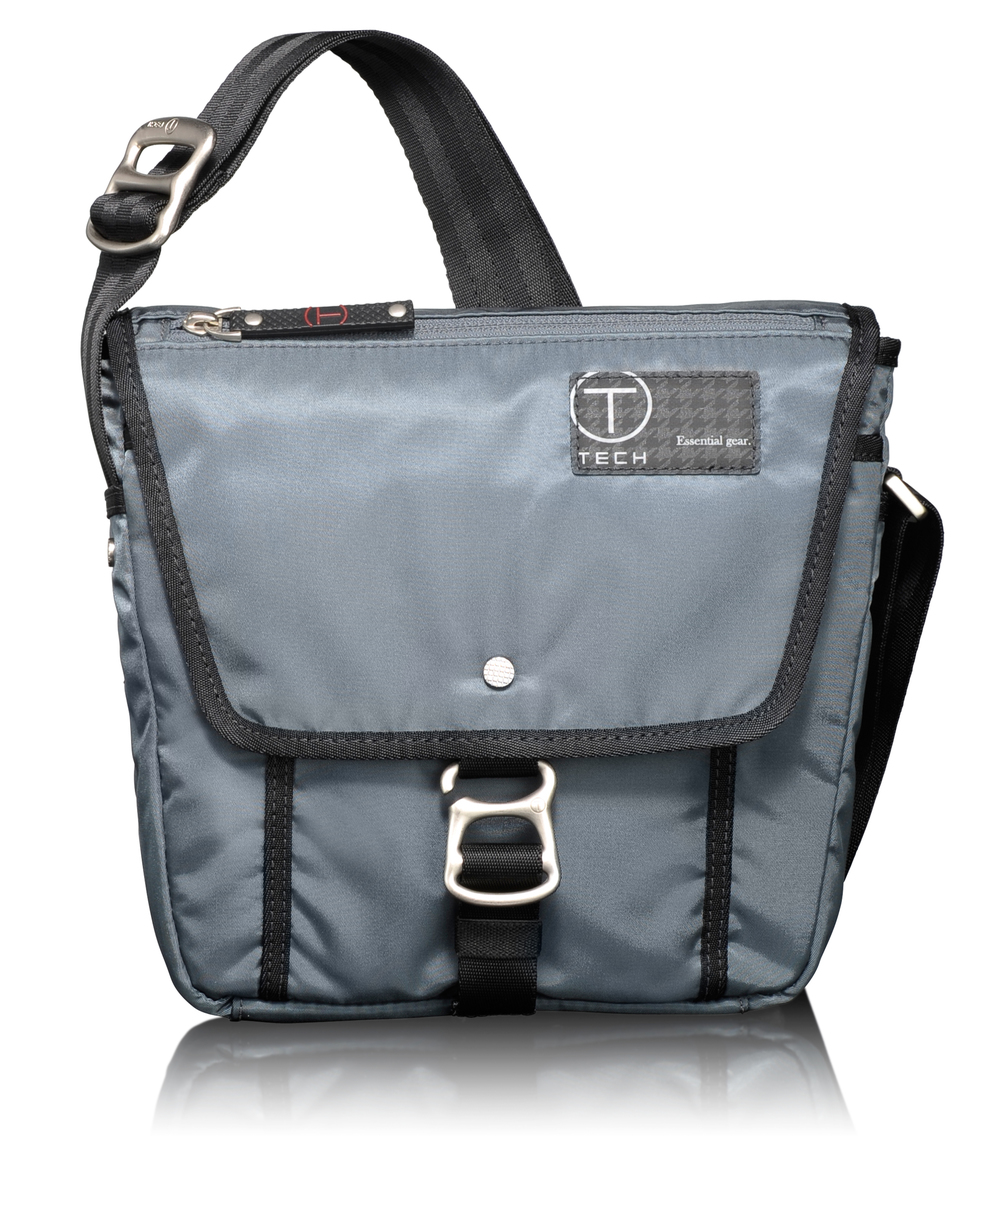 57501 Cadet T-Tech Icon Lewis Small Flpa Crossbody.jpg